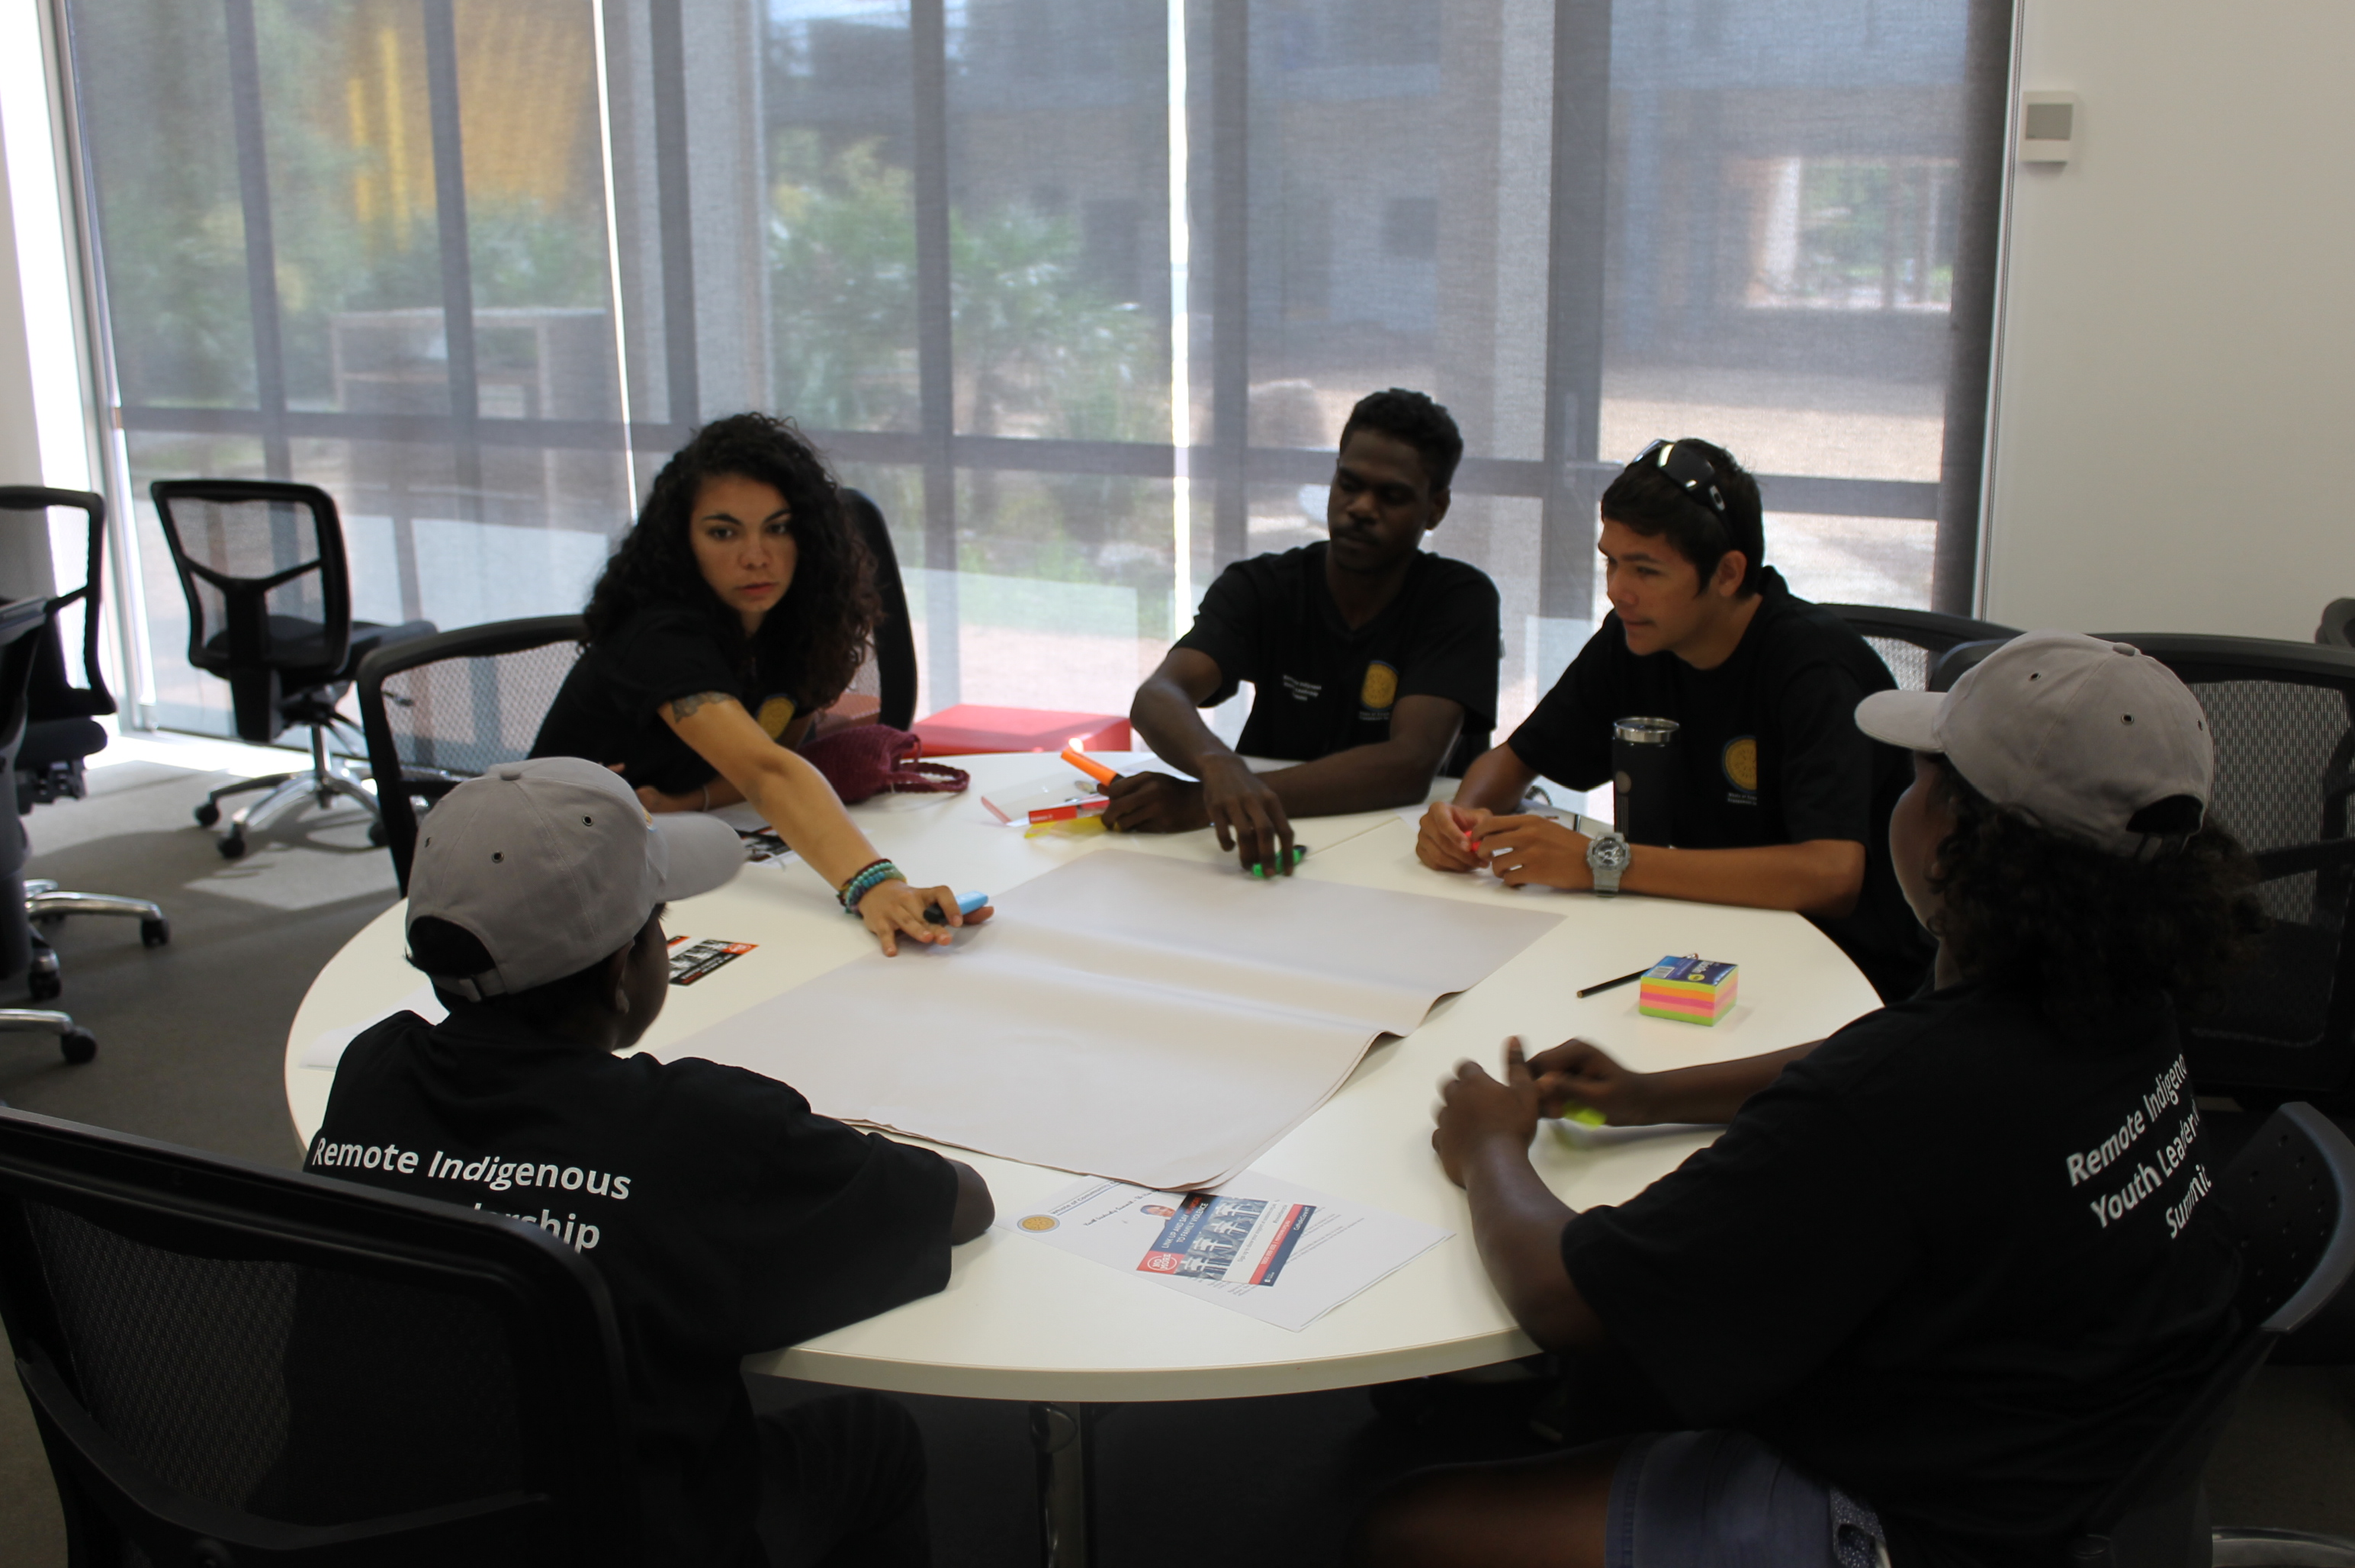 Students from Maningrida participating to CDU Remote Indigenous Youth Leadership Summit - November 2016<br>